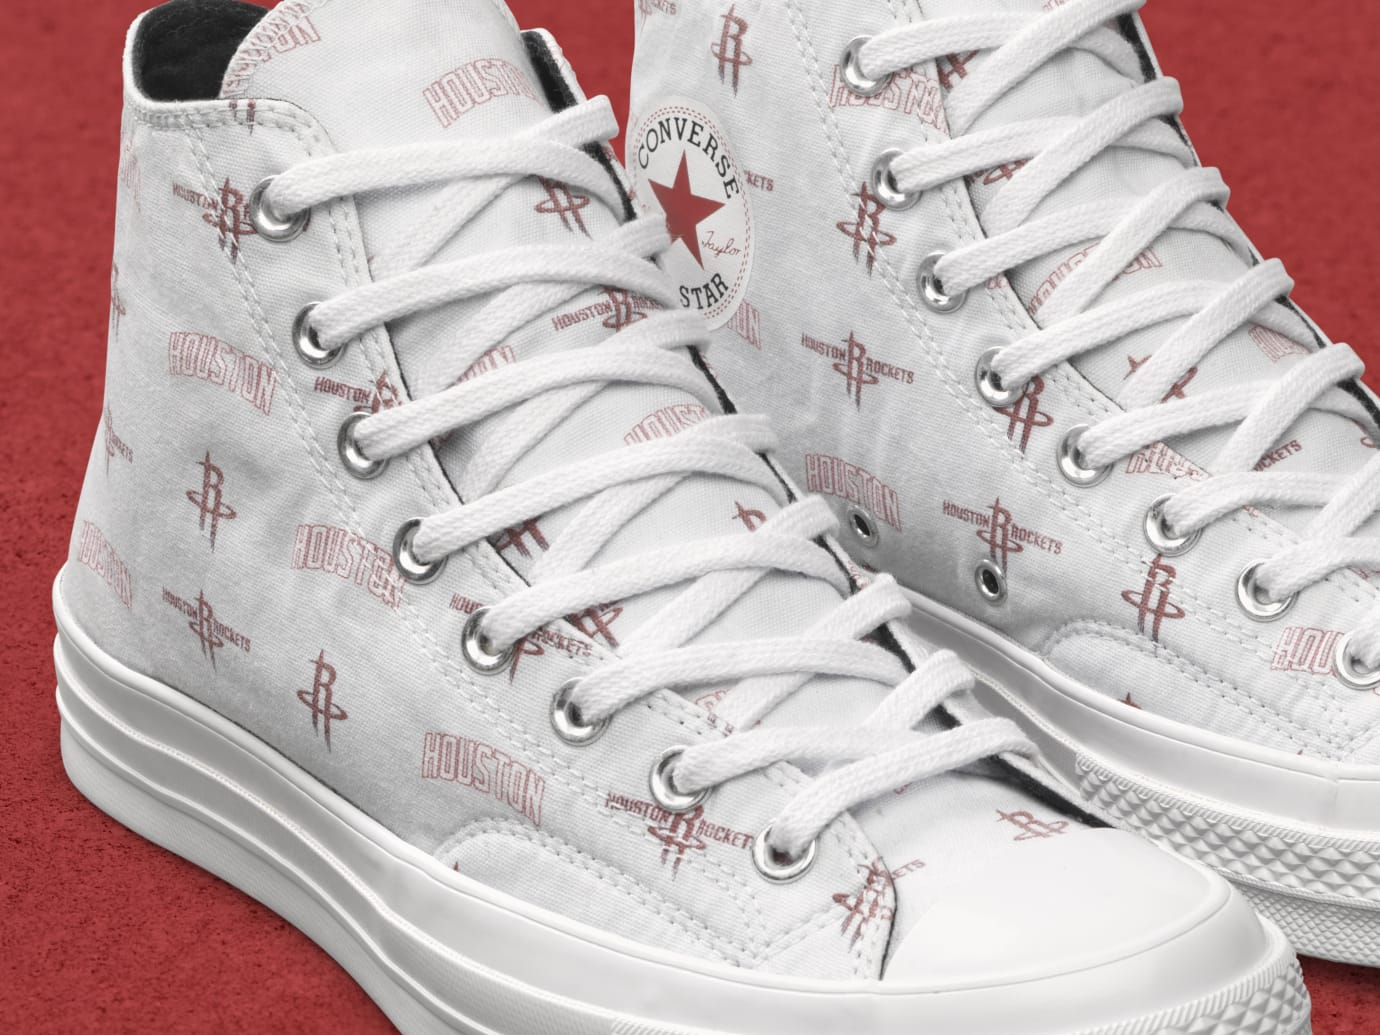 converse x nba city edition 'houston rockets'